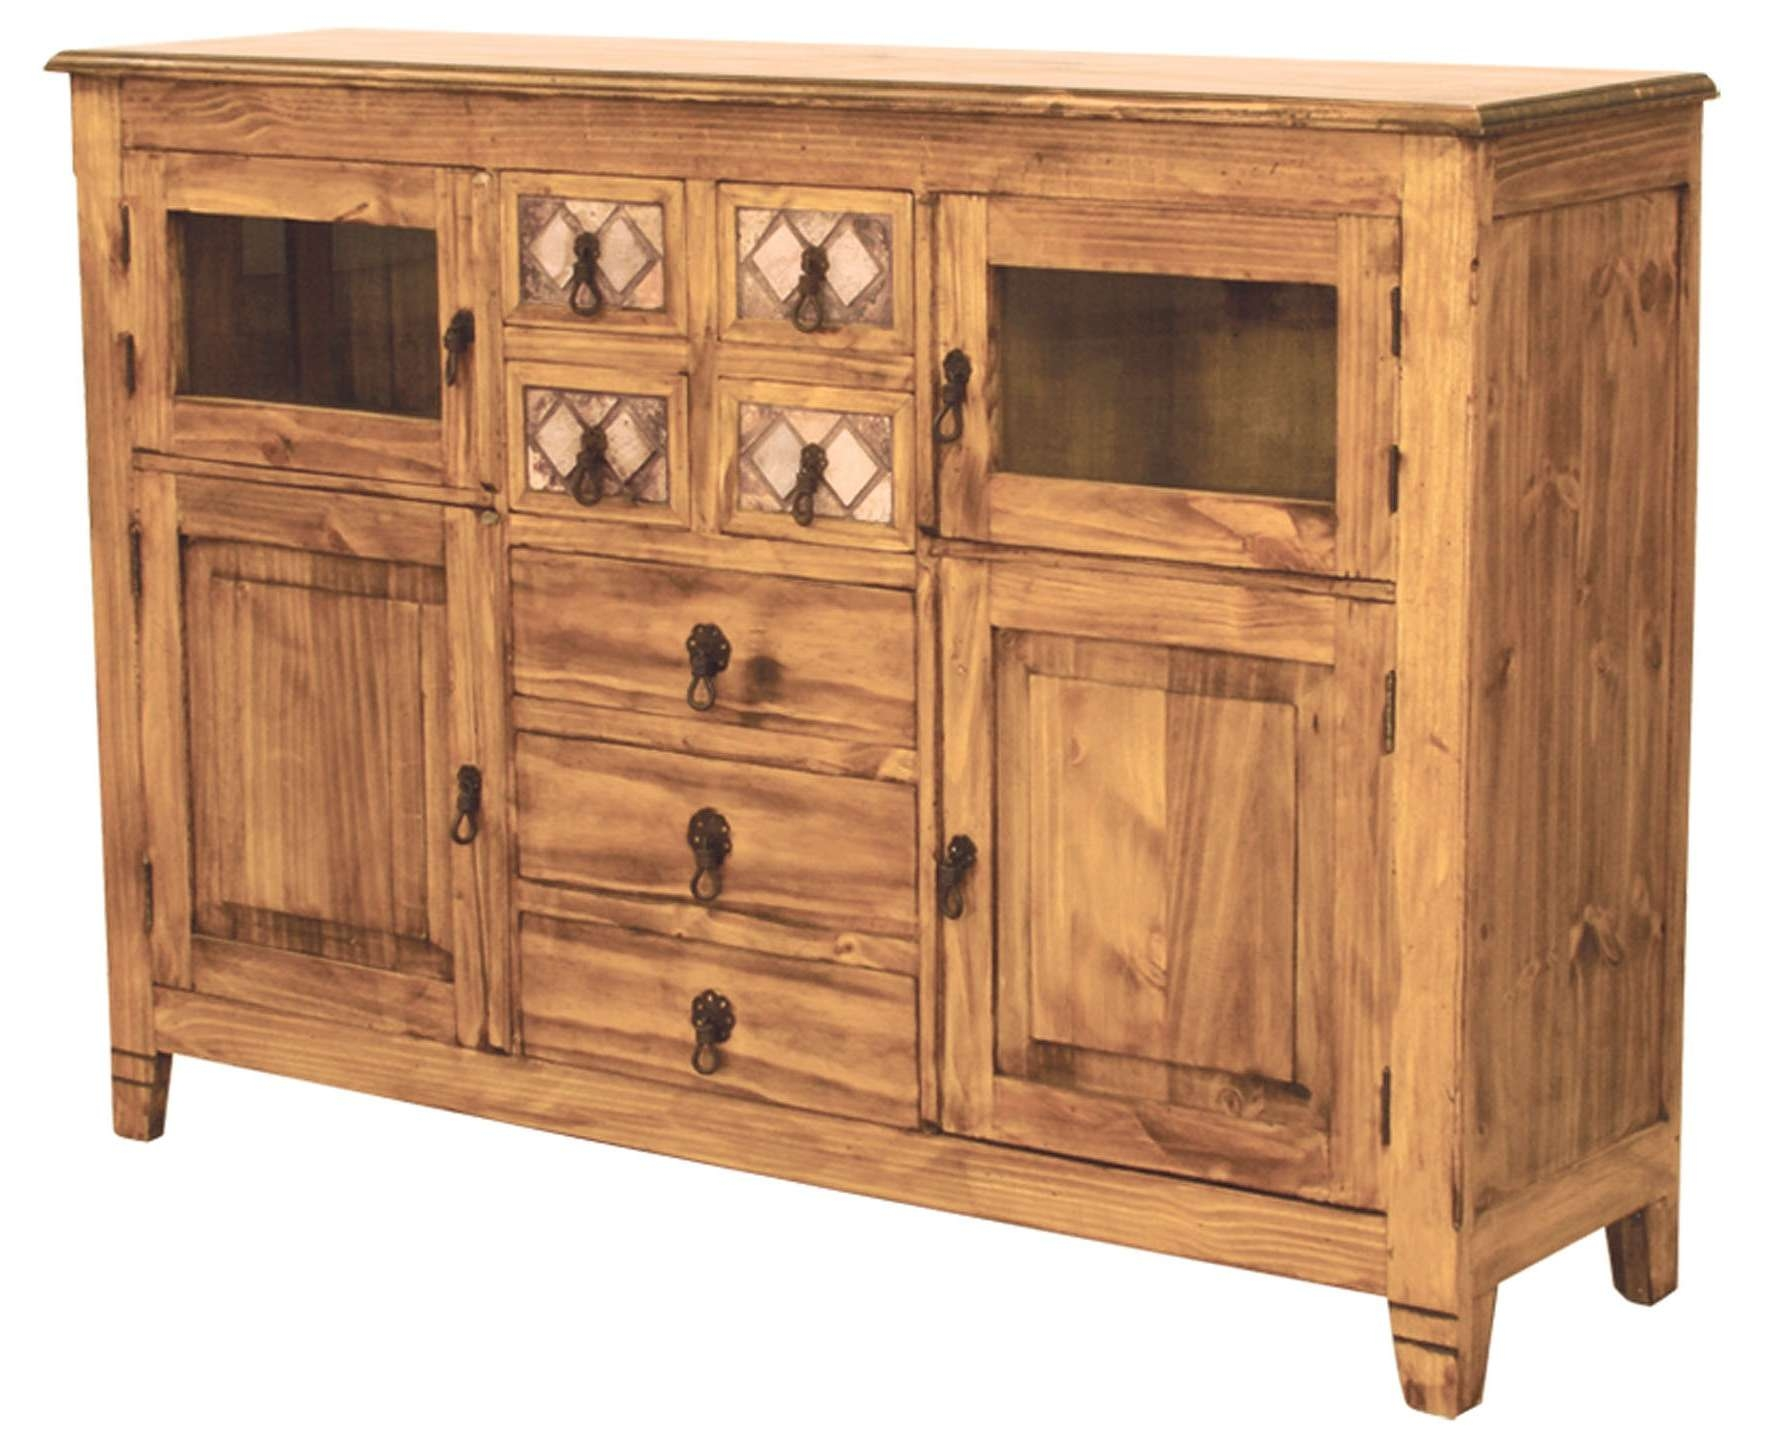 Marble And Pine Rustic Sideboard And Buffet Dining Furniture Intended For Rustic Sideboards And Buffets (View 6 of 20)